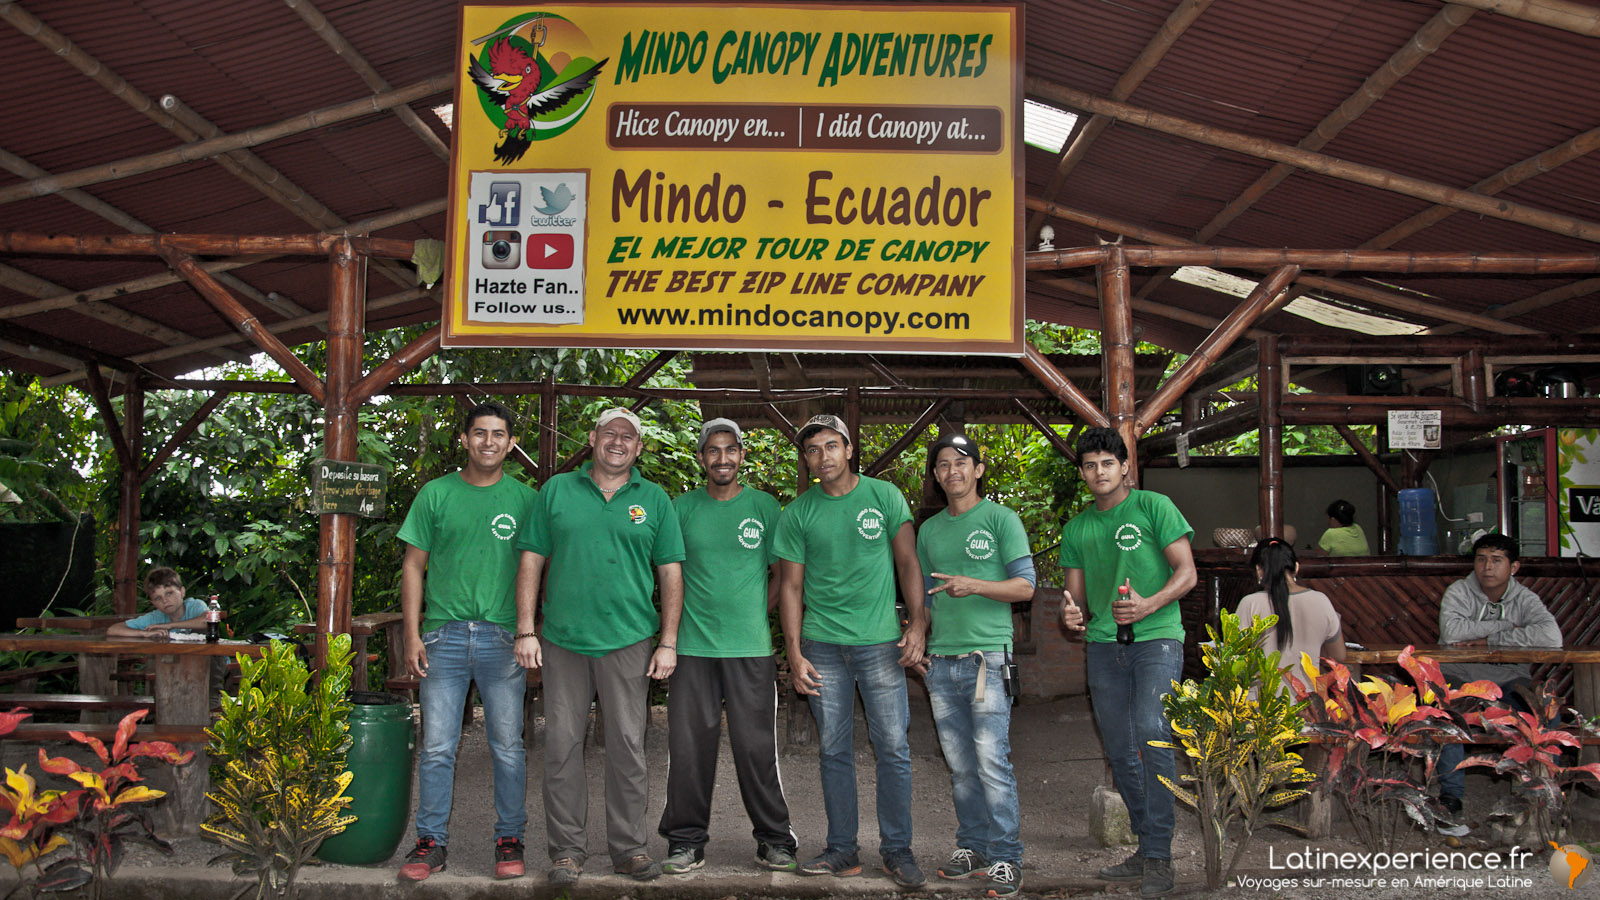 Equateur - Mindo Canopy Adventures - Latinexperience voyages